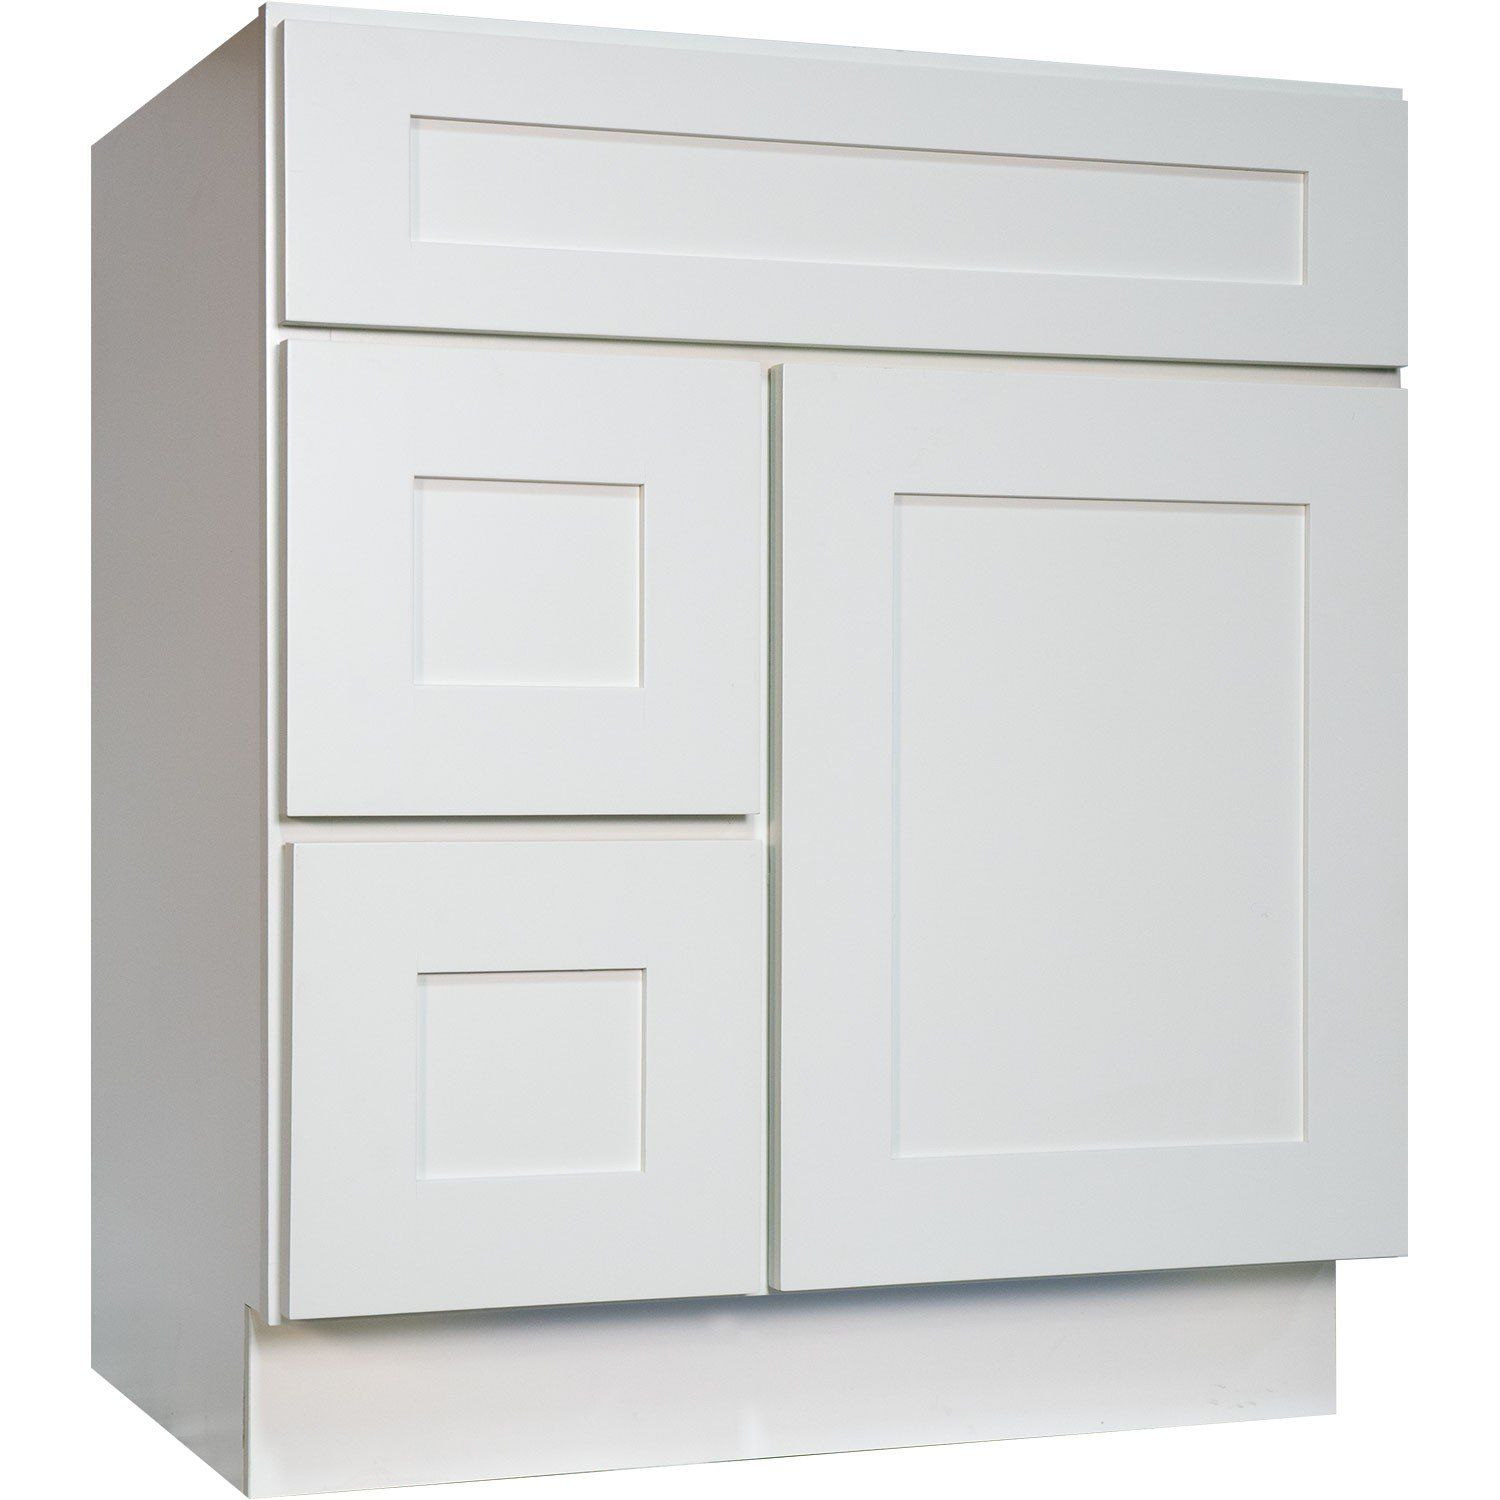 Pics Of  Inch Bathroom Vanity Single Sink Cabinet in White Shaker with Soft Close Doors and Drawers